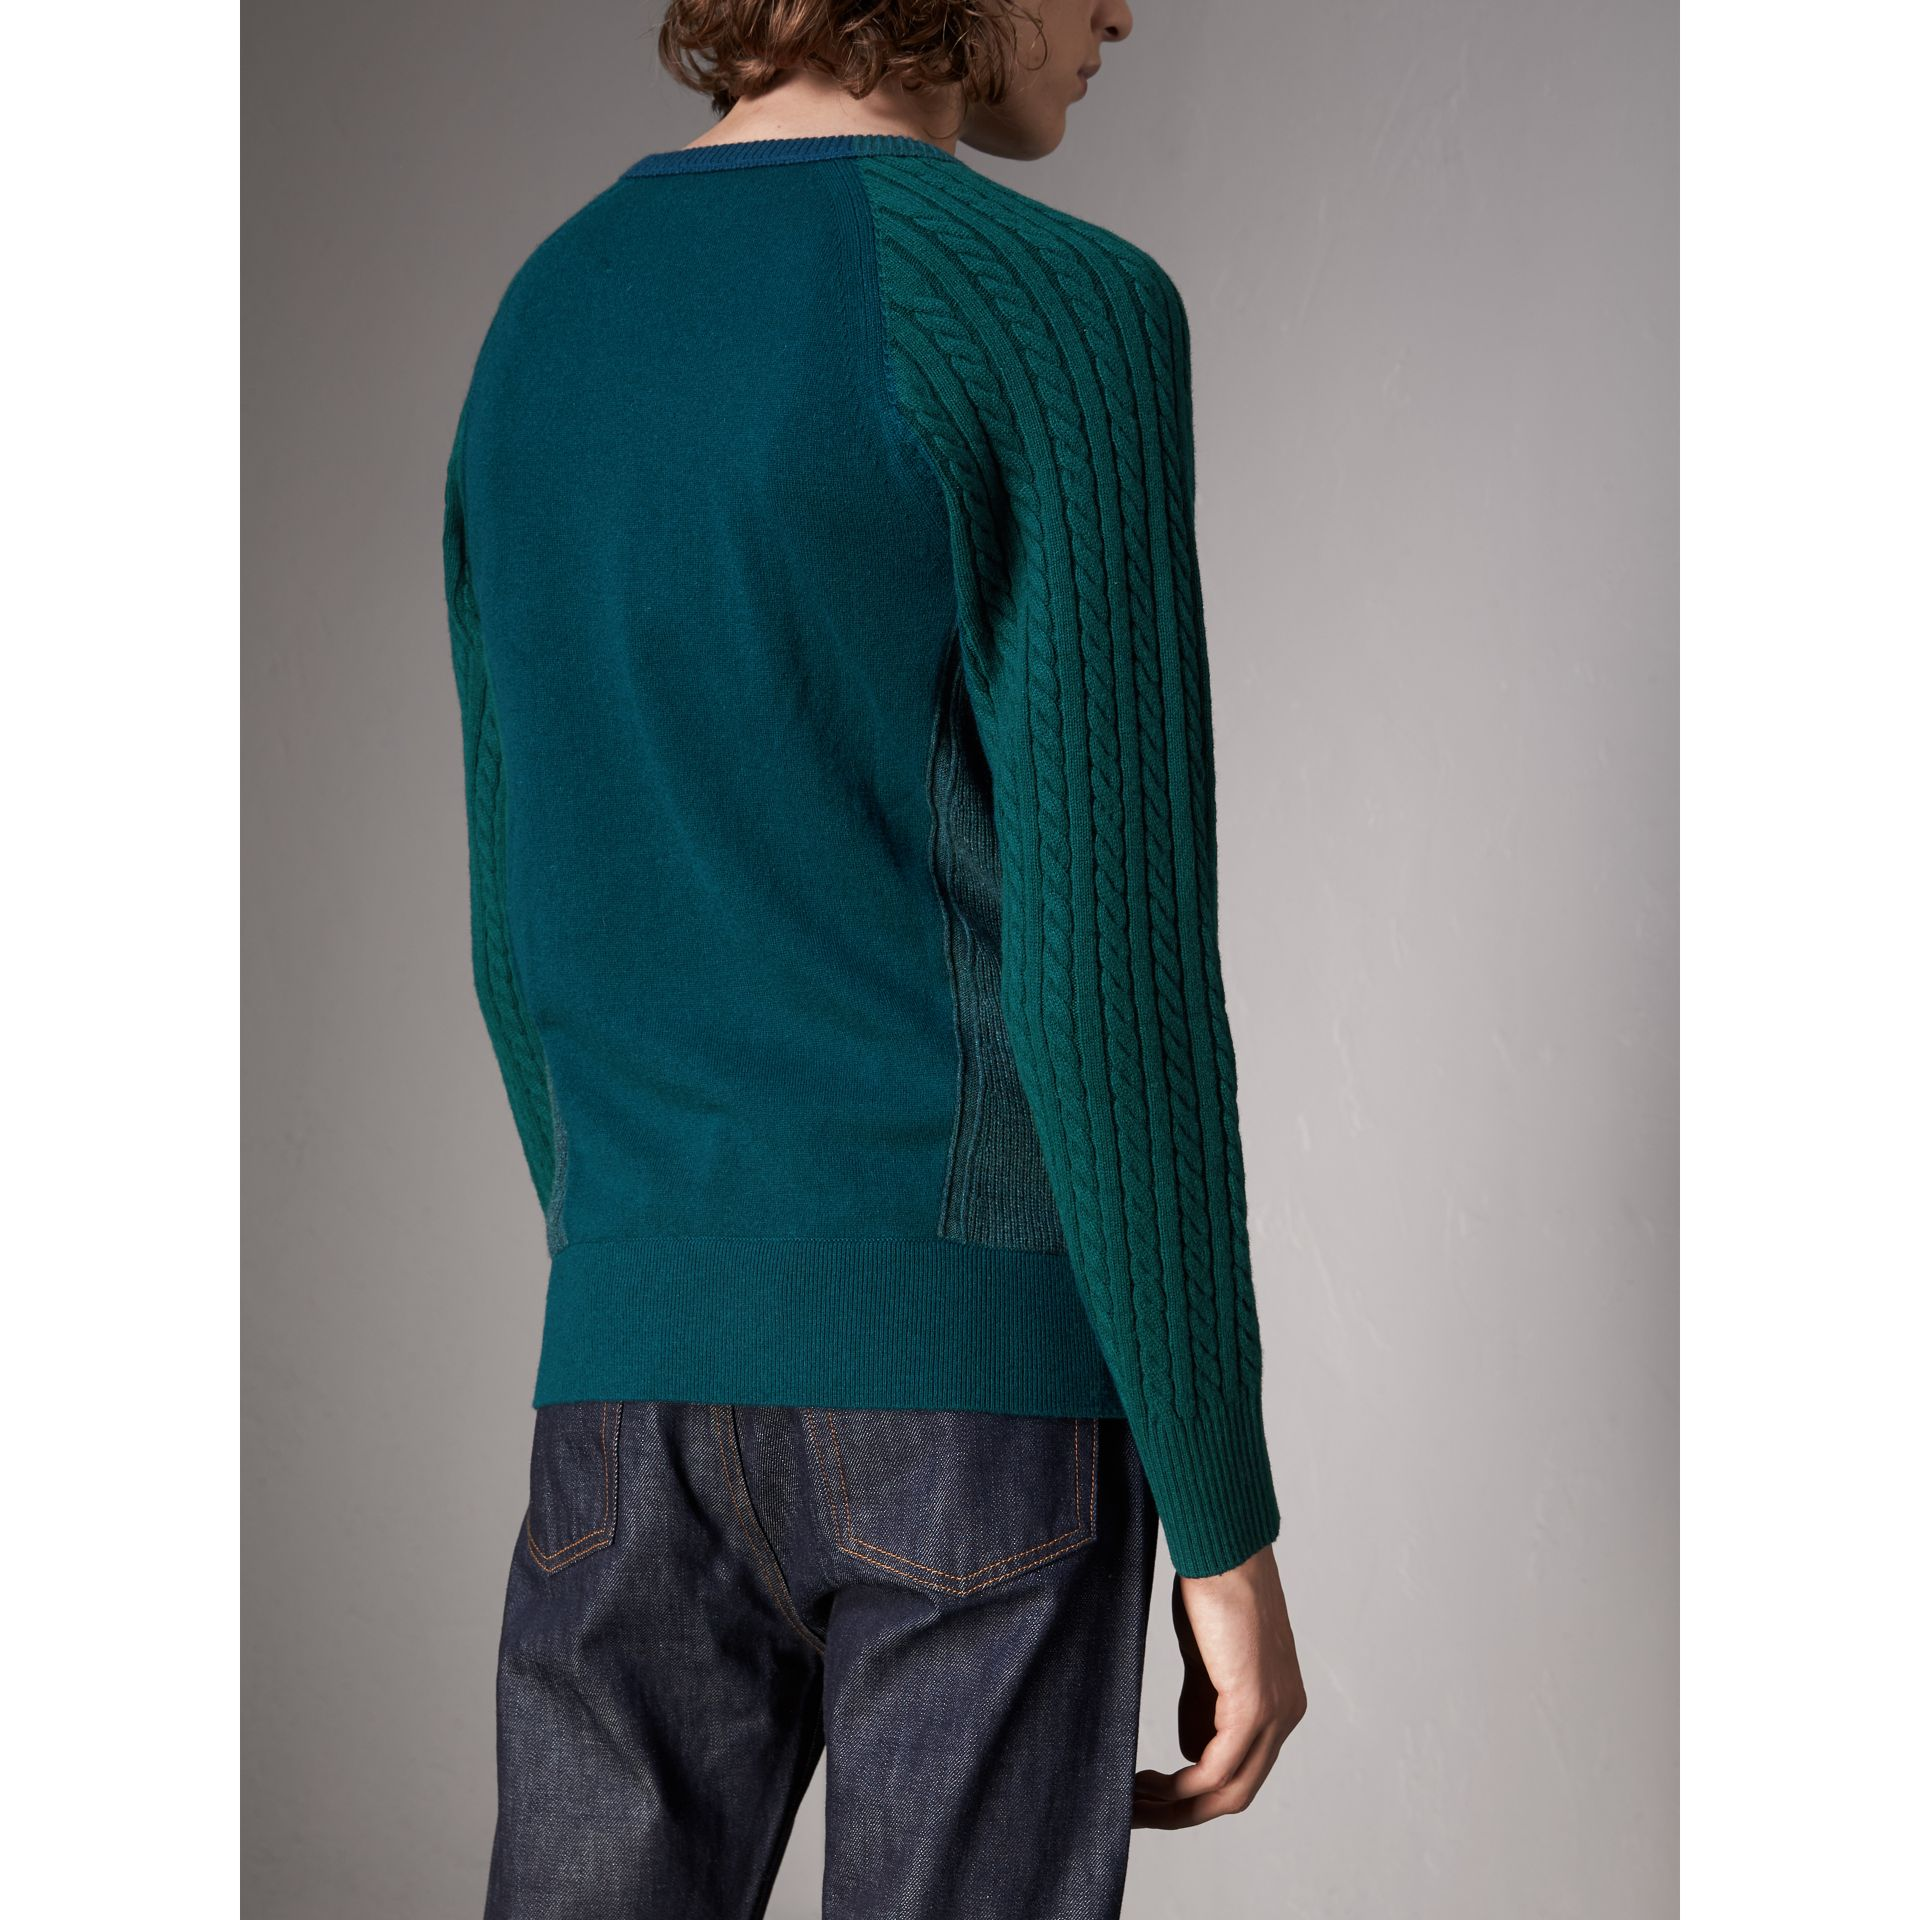 Two-tone Cable Knit Cashmere Sweater in Dark Teal - Men | Burberry - gallery image 3